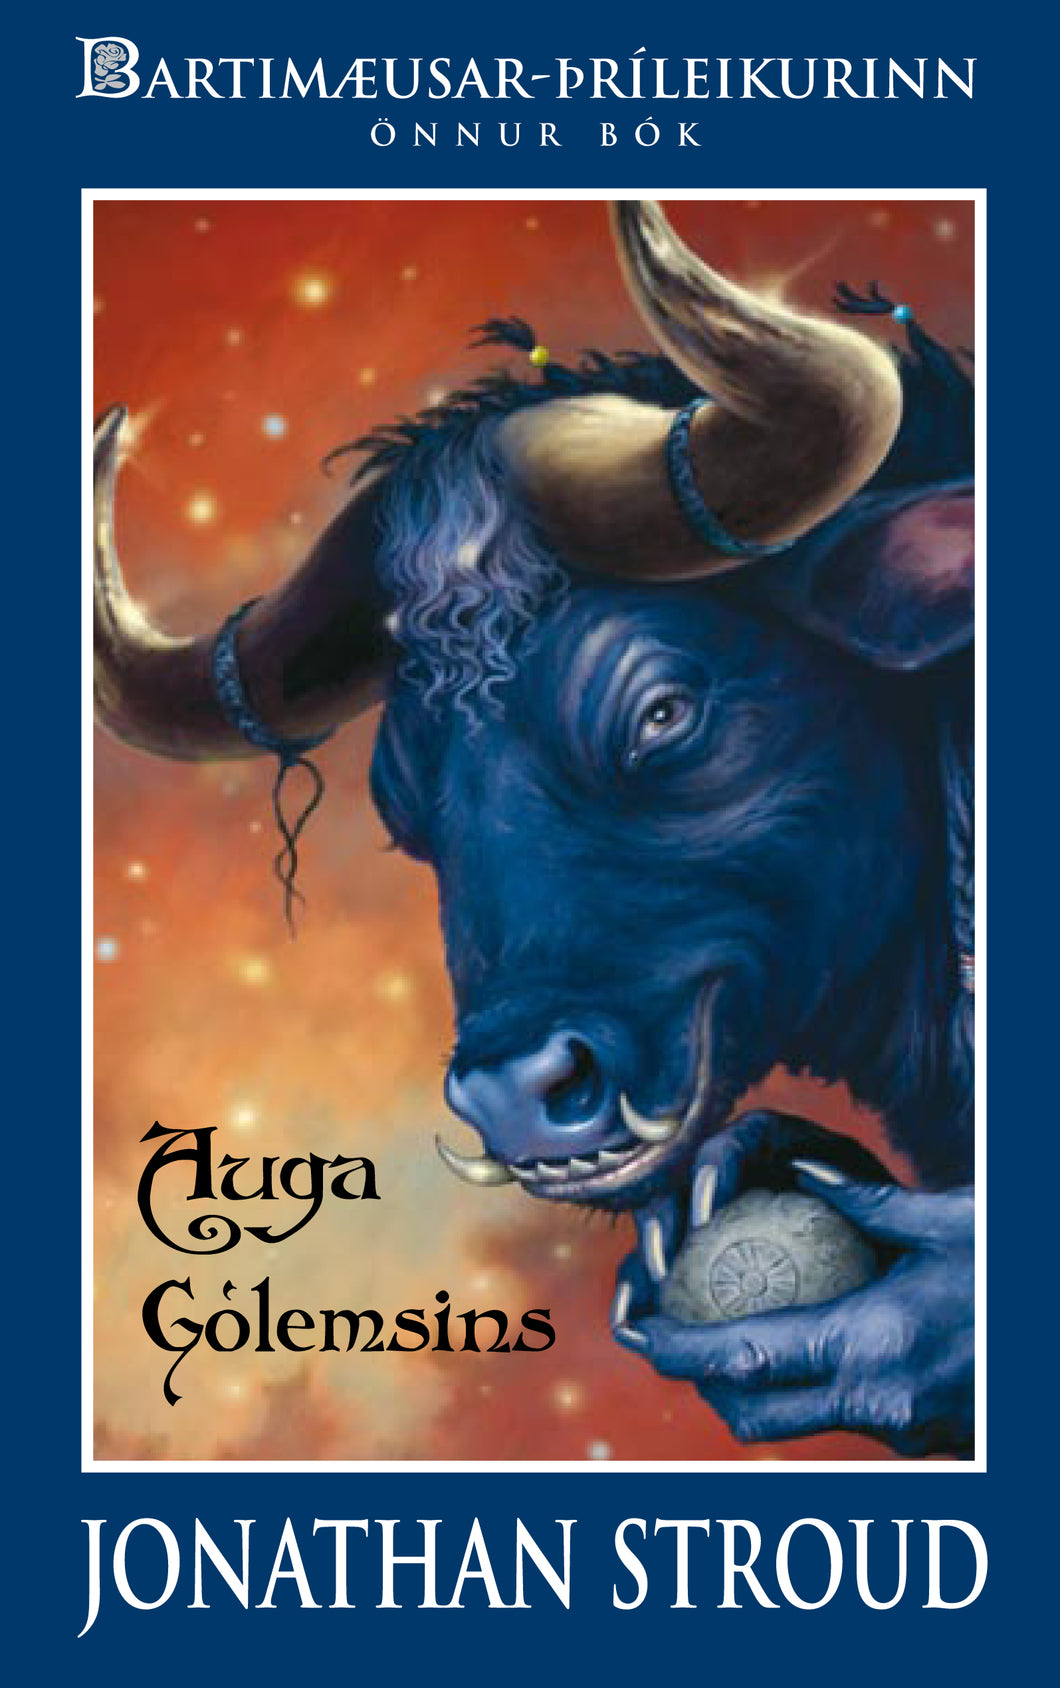 Auga Gólemsins<br><small><i>Jonathan Stroud</i></small></p>